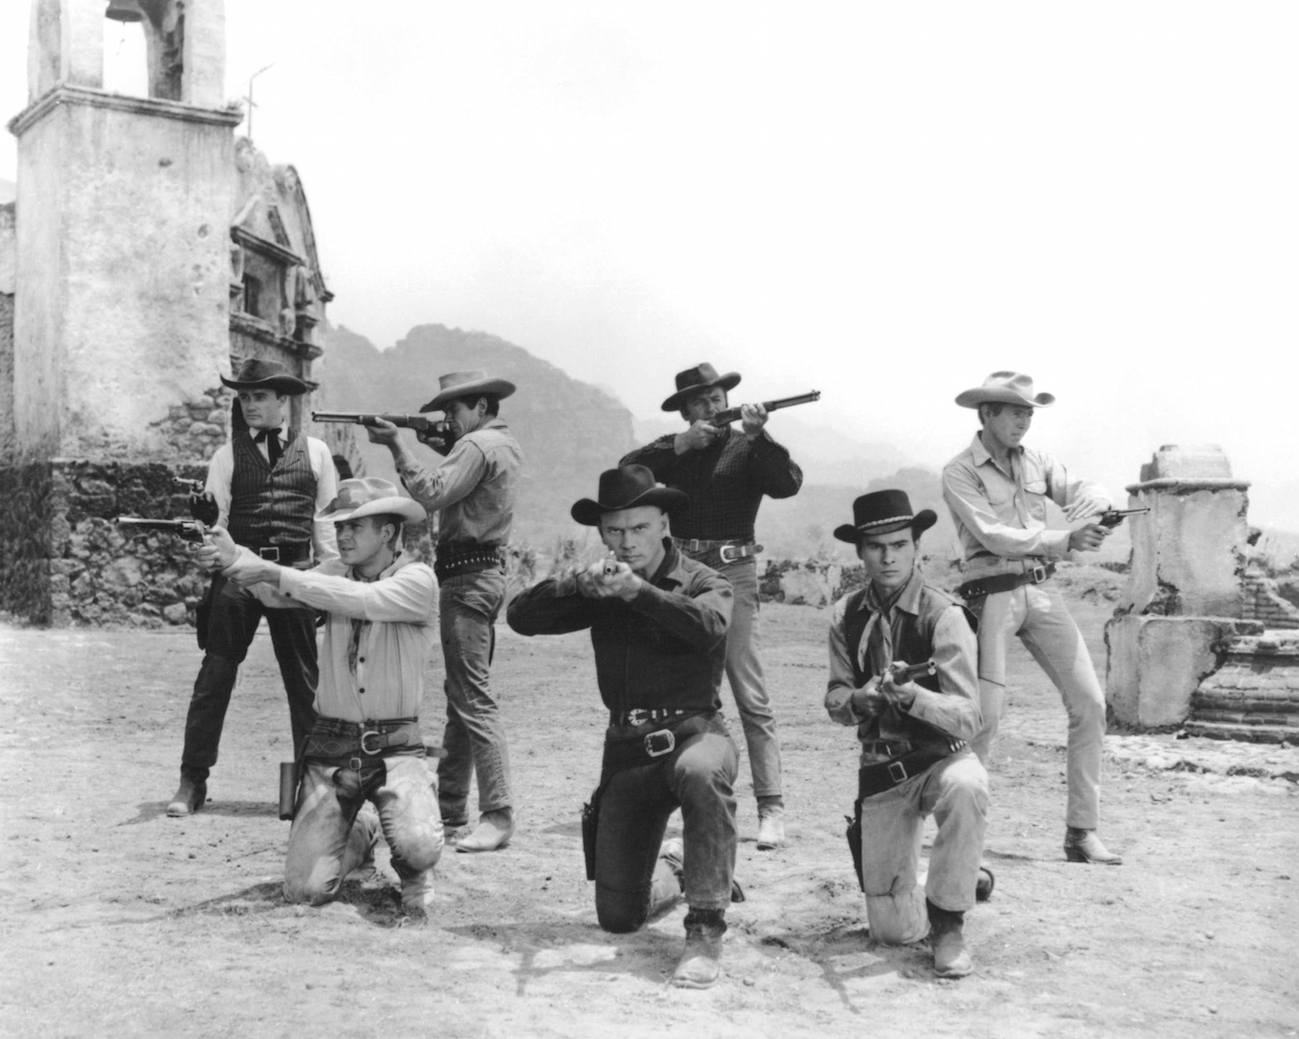 The principle cast in a publicity still for 'The Magnificent Seven', directed by John Sturges, 1960.